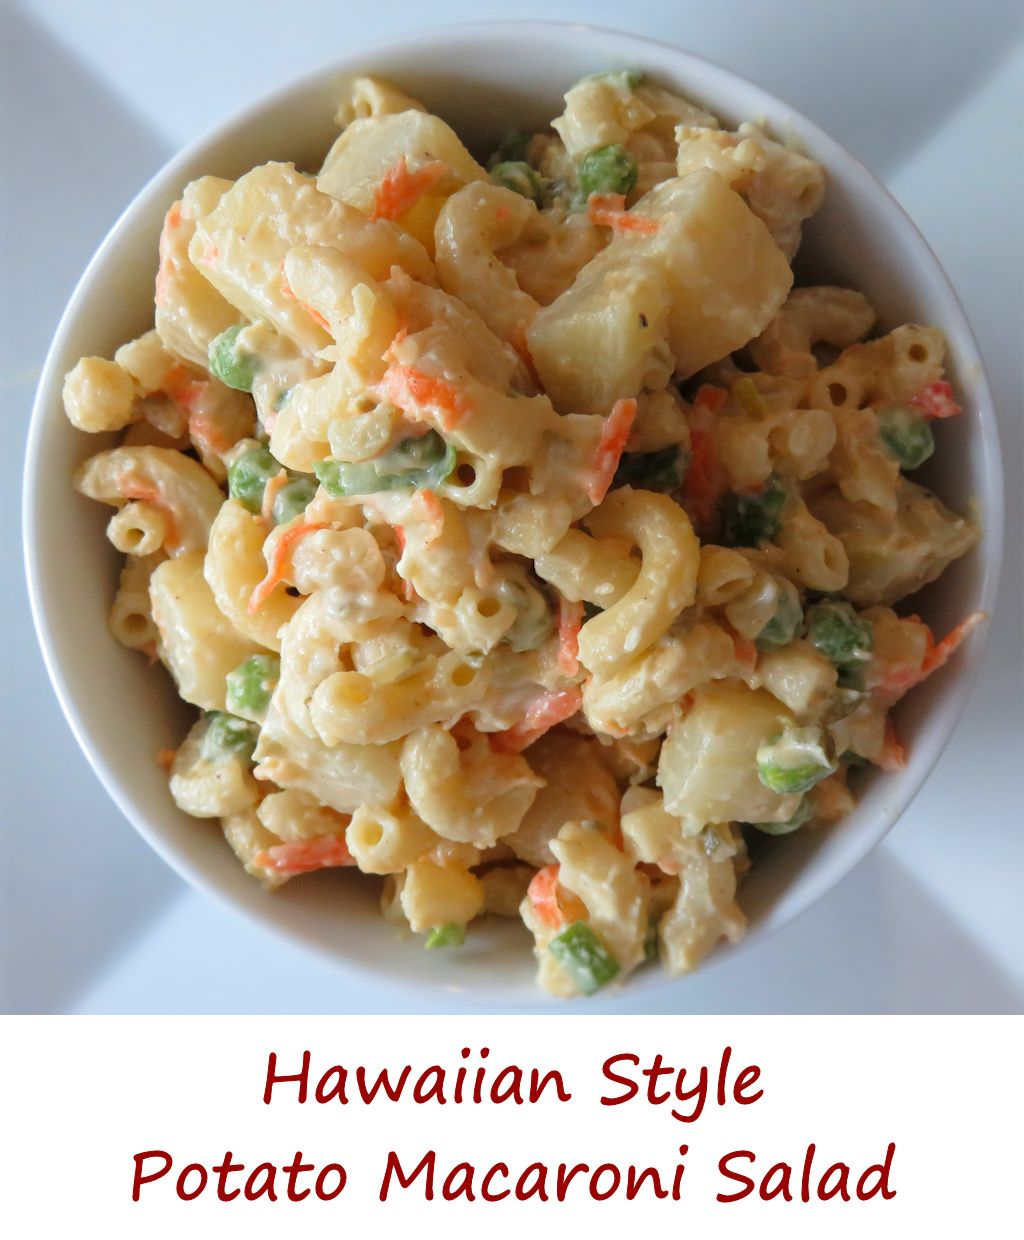 Hawaiian-Style Potato Macaroni Salad